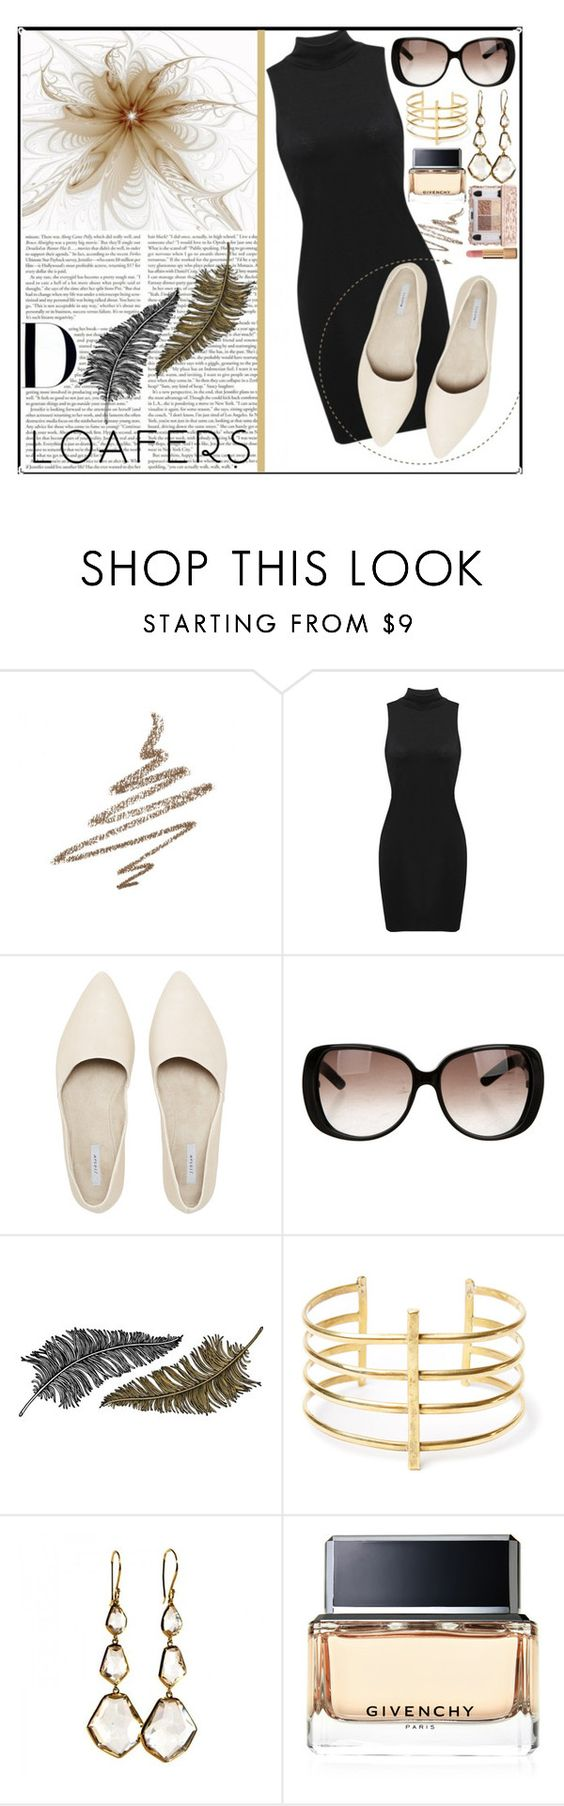 """""""Fall Footwear Trend: Loafers"""" by sealy913 ❤ liked on Polyvore featuring Anastasia Beverly Hills, Gucci, Paperself, BauXo, Ippolita, Givenchy and Chanel"""